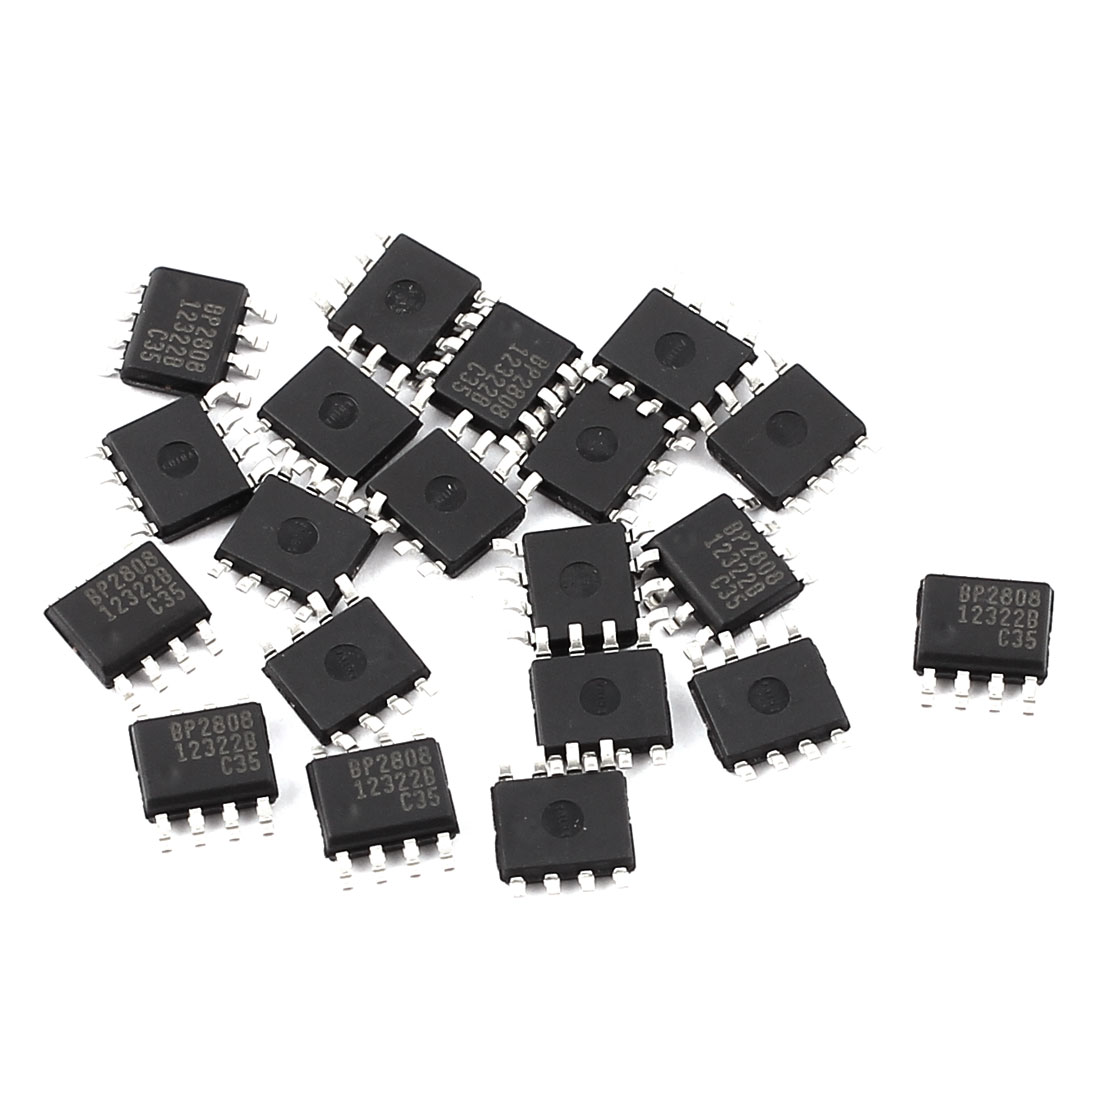 20Pcs BP2808 SOP-8 SMD SMT Type PCB Surface Mount LED Driver Circuit Module Integrated Circuit IC Chip